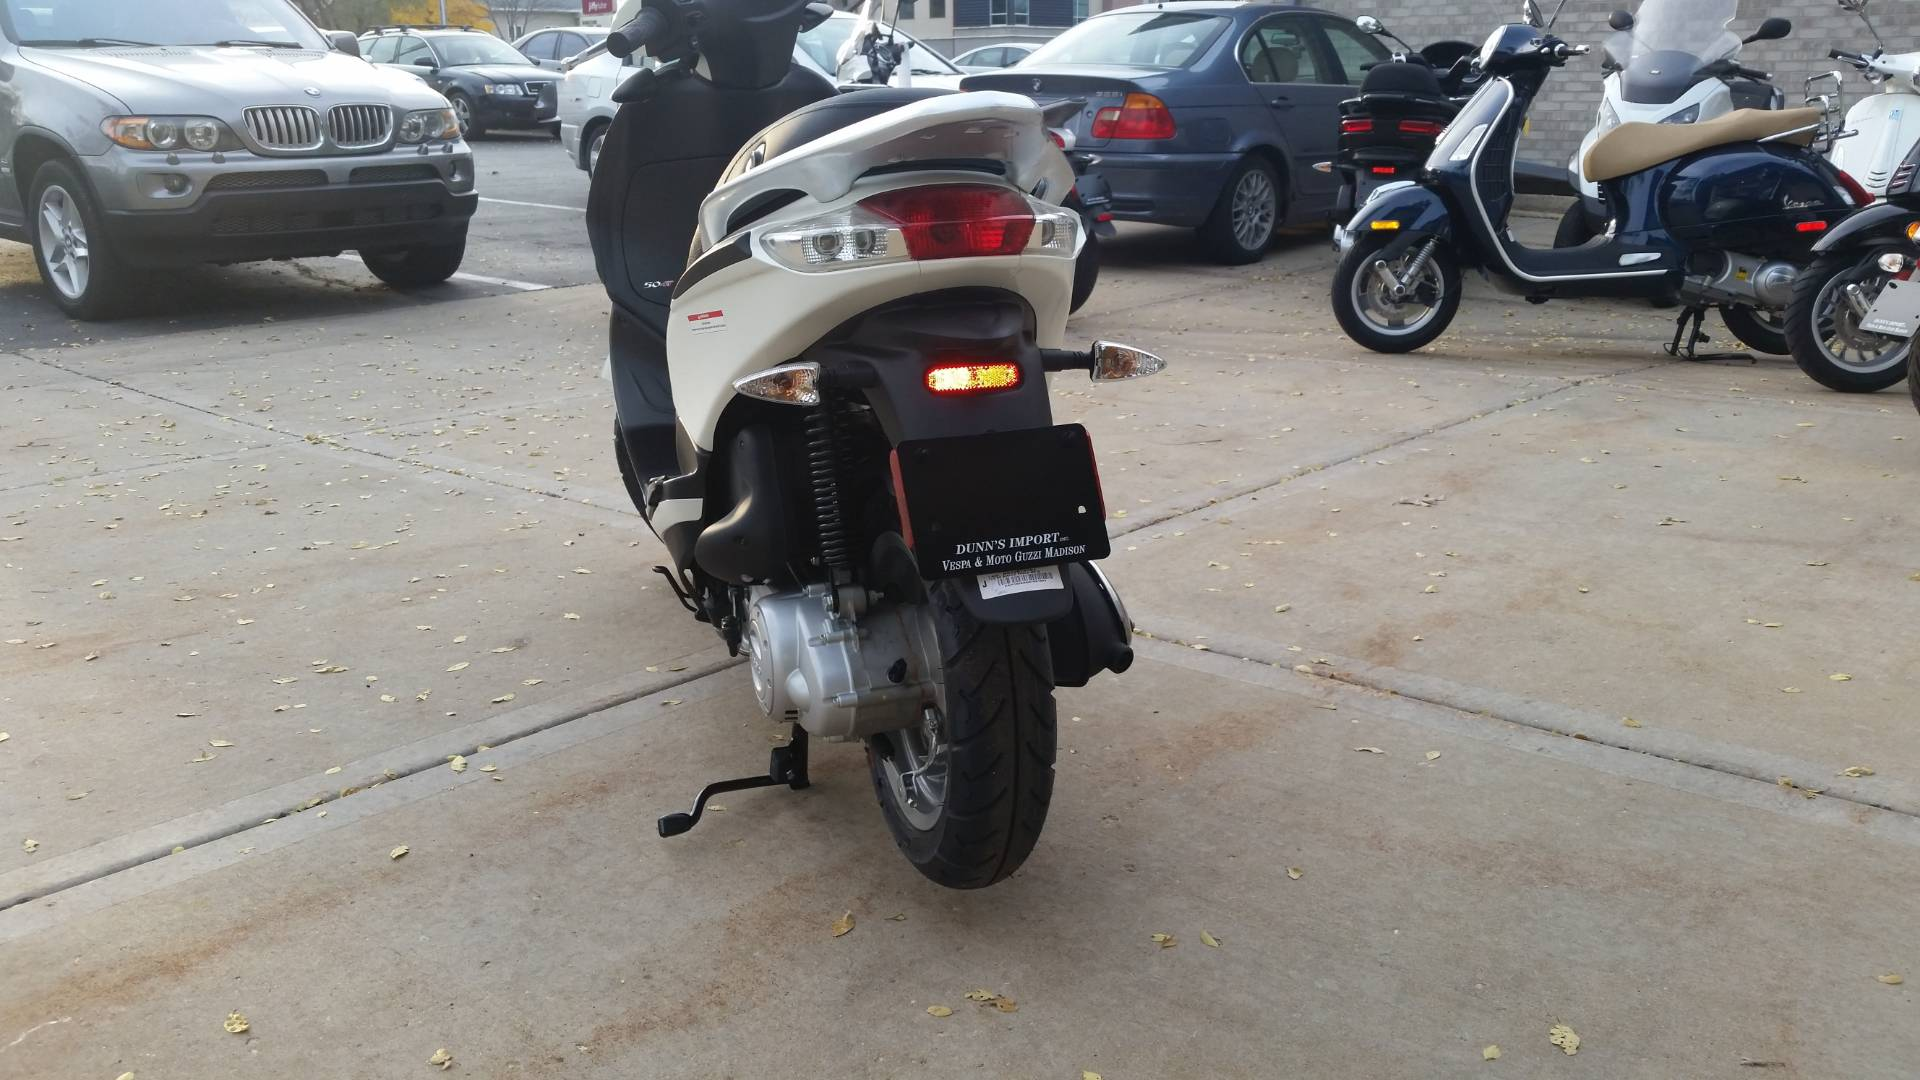 new 2017 piaggio fly 50 scooters in middleton, wi | stock number